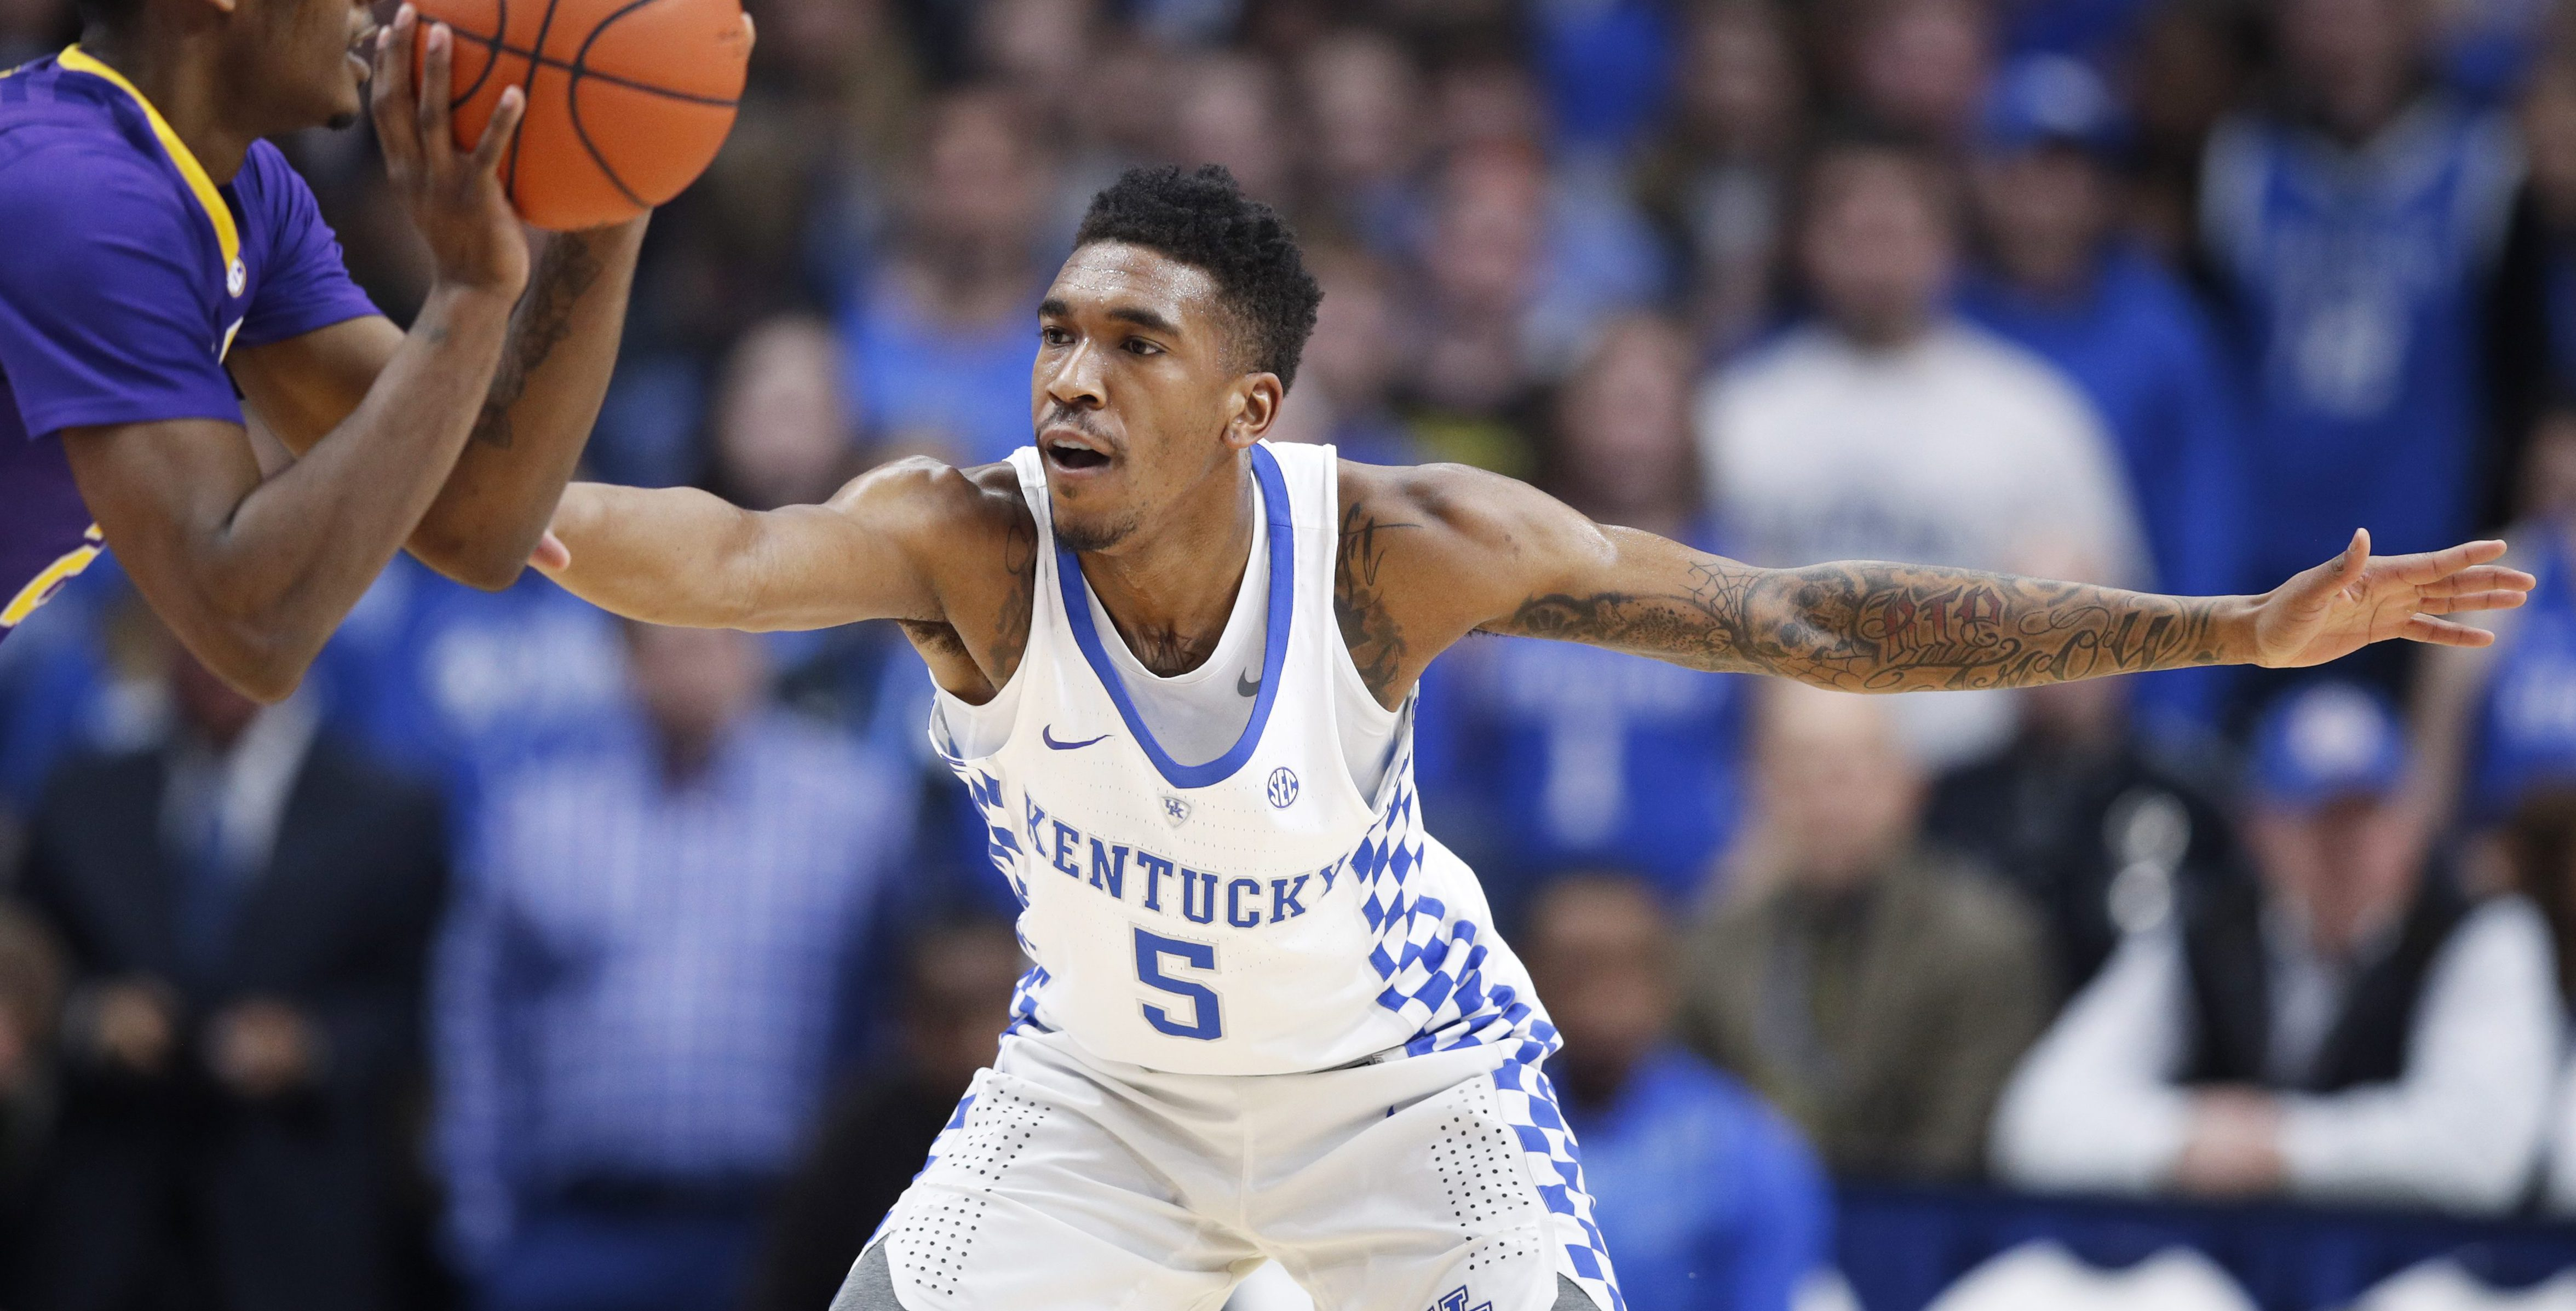 LEXINGTON, KY - FEBRUARY 07: Malik Monk #5 of the Kentucky Wildcats defends against Antonio Blakeney #2 of the LSU Tigers in the first half of the game at Rupp Arena on February 7, 2017 in Lexington, Kentucky. Kentucky defeated LSU 92-85. (Photo by Joe Robbins/Getty Images)